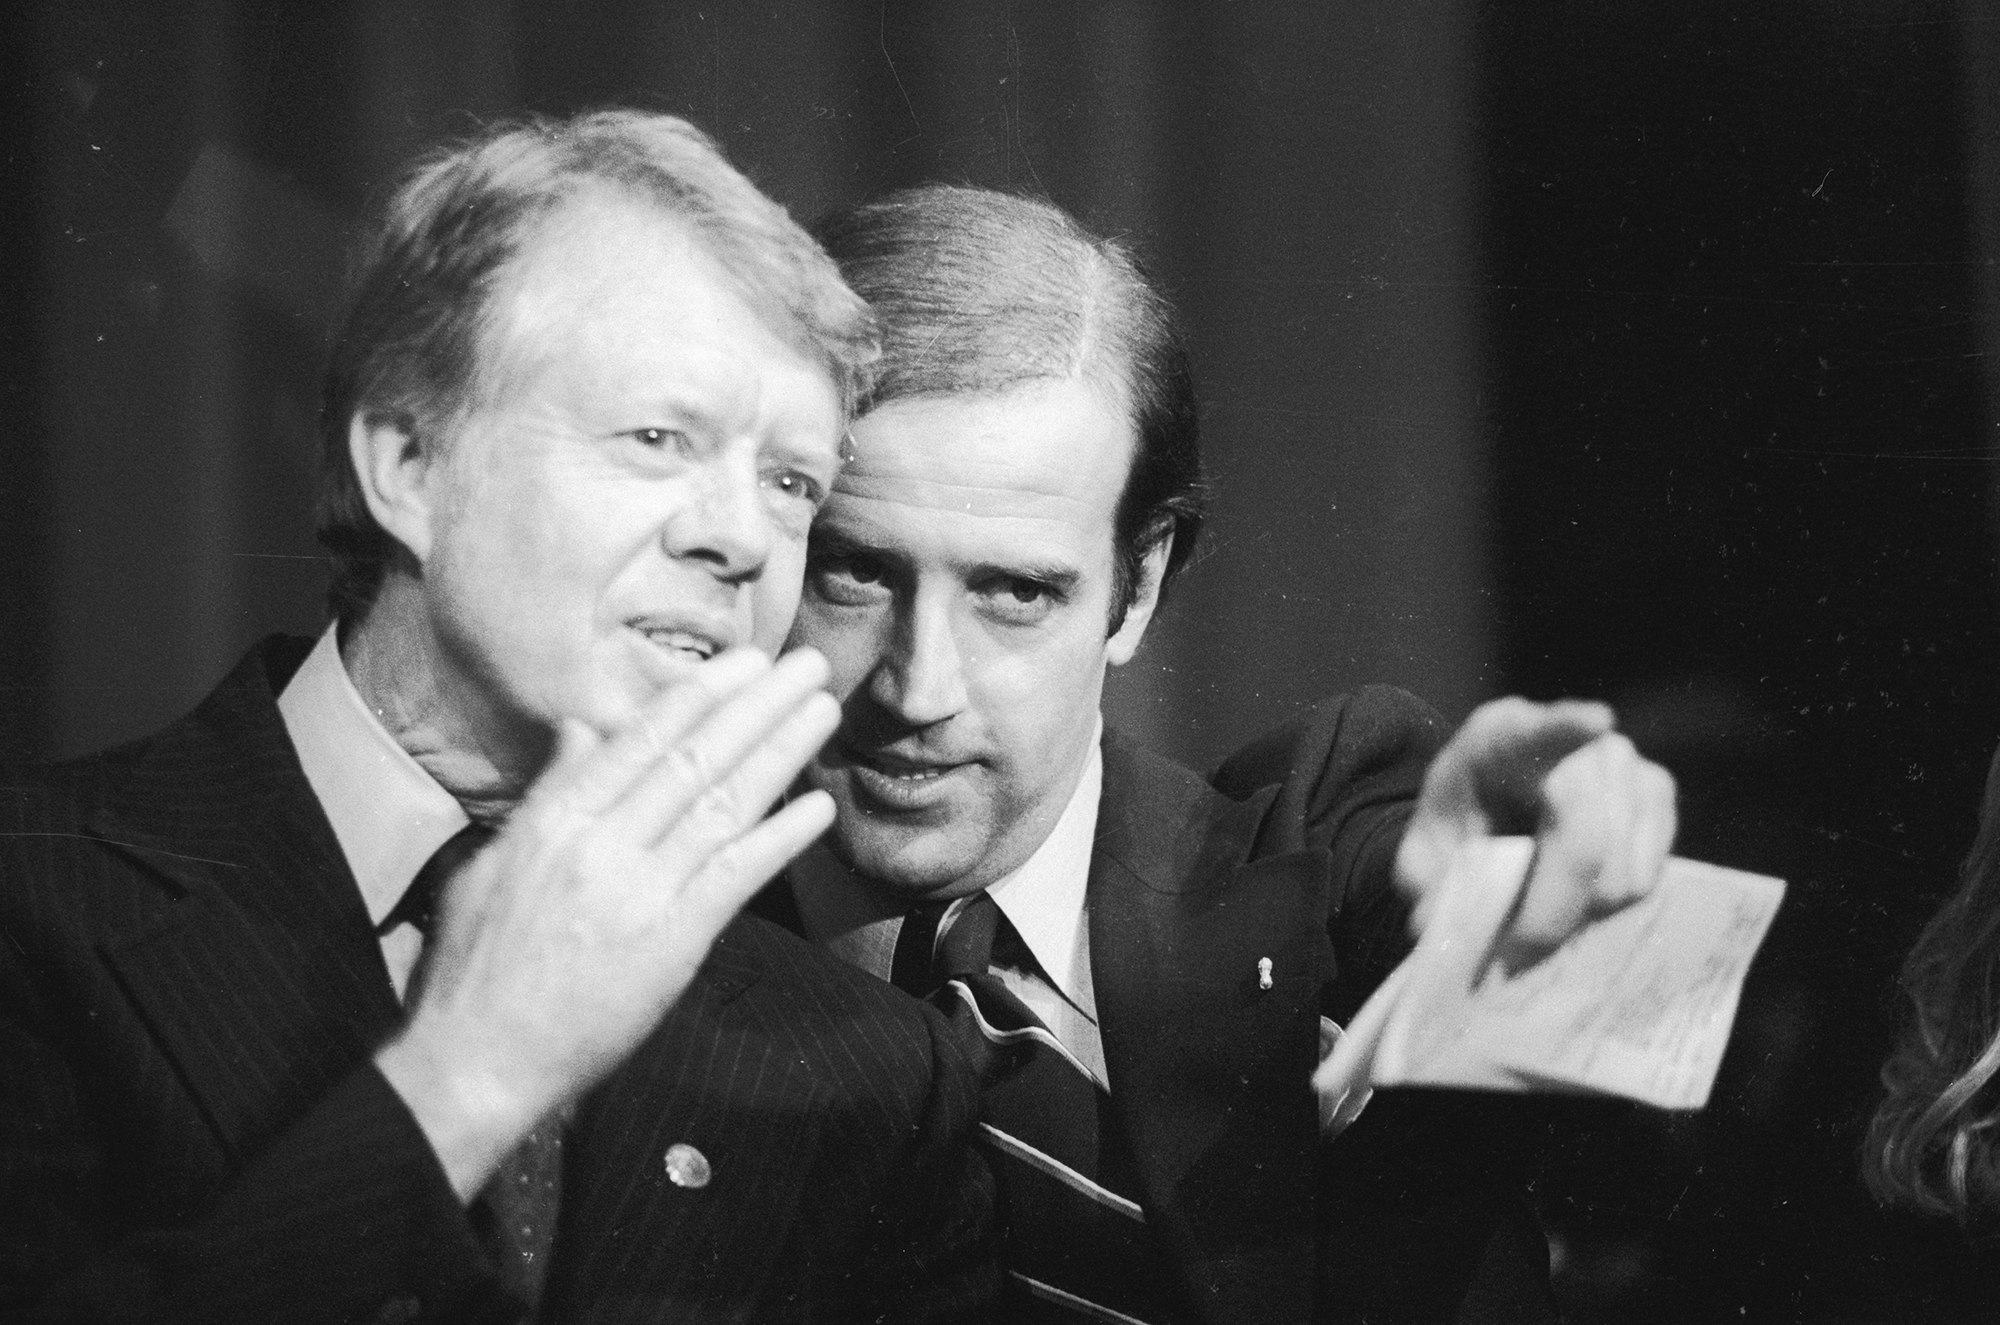 Delaware's U.S. Senator Joseph Biden points out a friend in the crowd at the Padua Academy to President Jimmy Carter during a fundraiser on February 20, 1978.